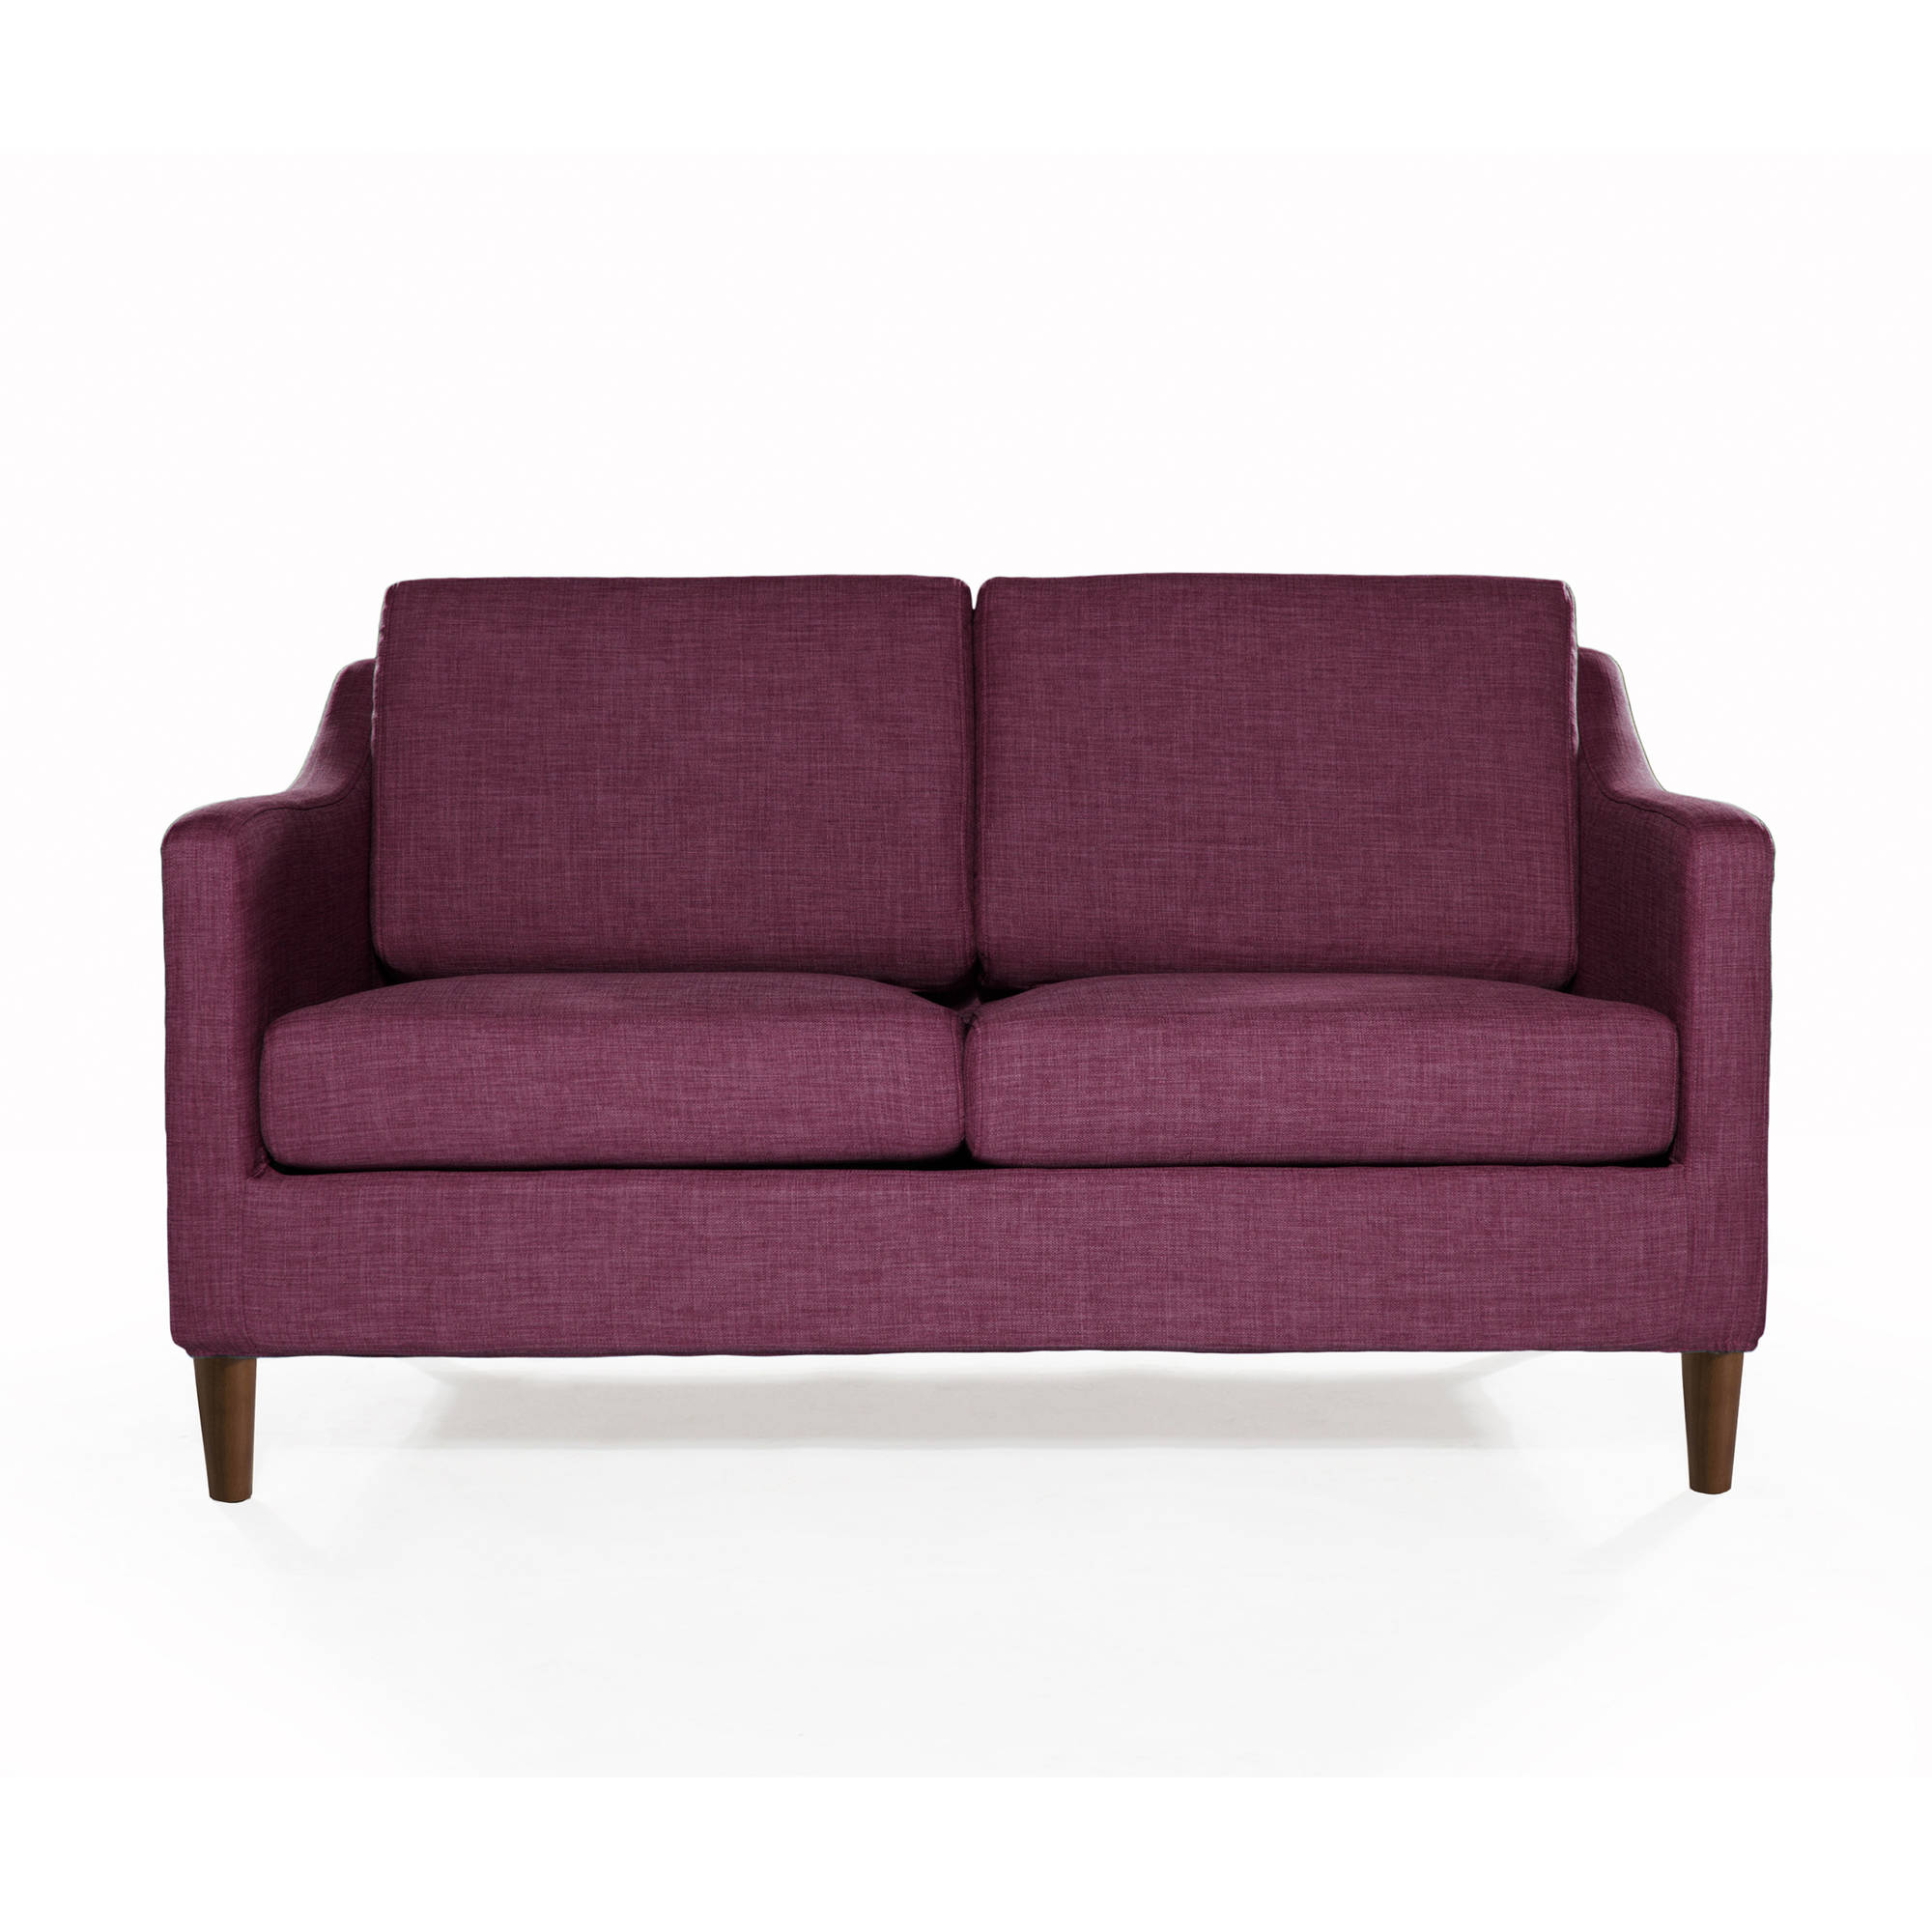 sectional sofa under 2000 teal leather chesterfield couch time  everyone needs a little